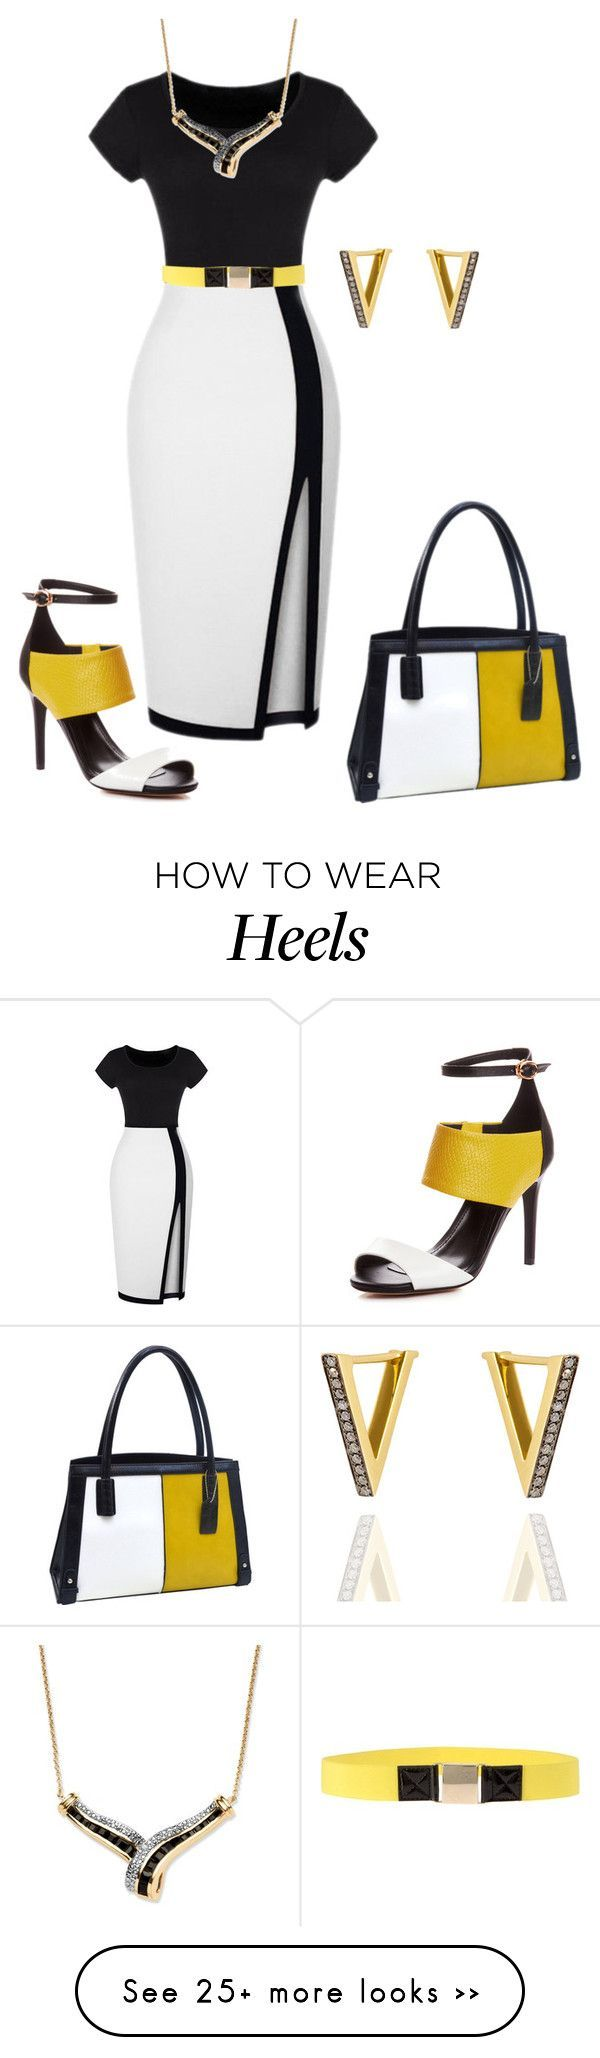 """Heel Matching"" by najoli on Polyvore featuring MSGM, Palm Beach Jewelry, Dasein, Noor Fares and HeelMatching"